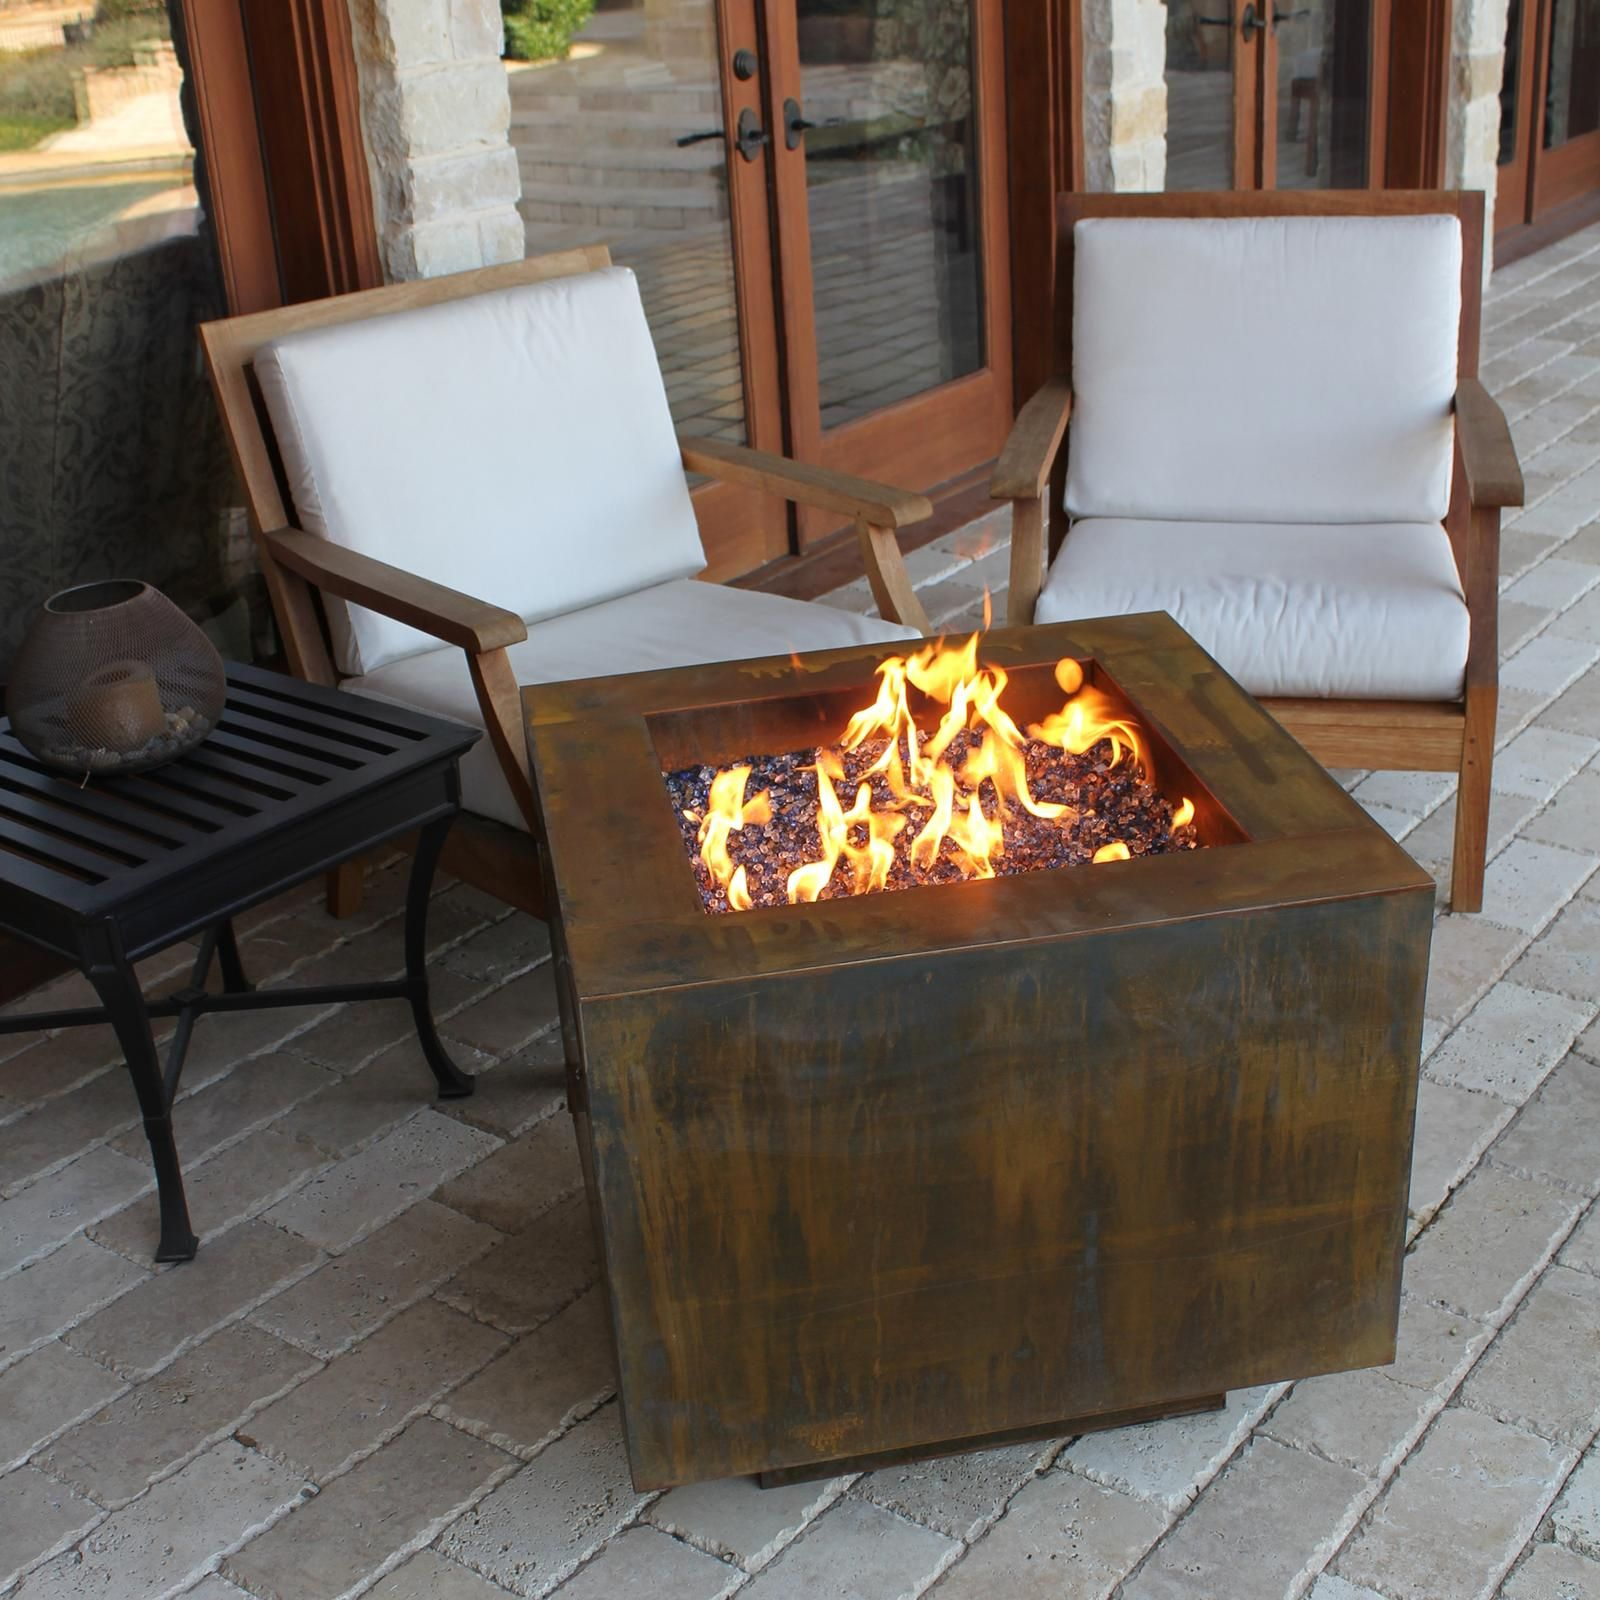 30 Square Cor Ten Steel Fire Pit With Hidden Lp Tank With Images Fire Pit Steel Fire Pit Outdoor Fire